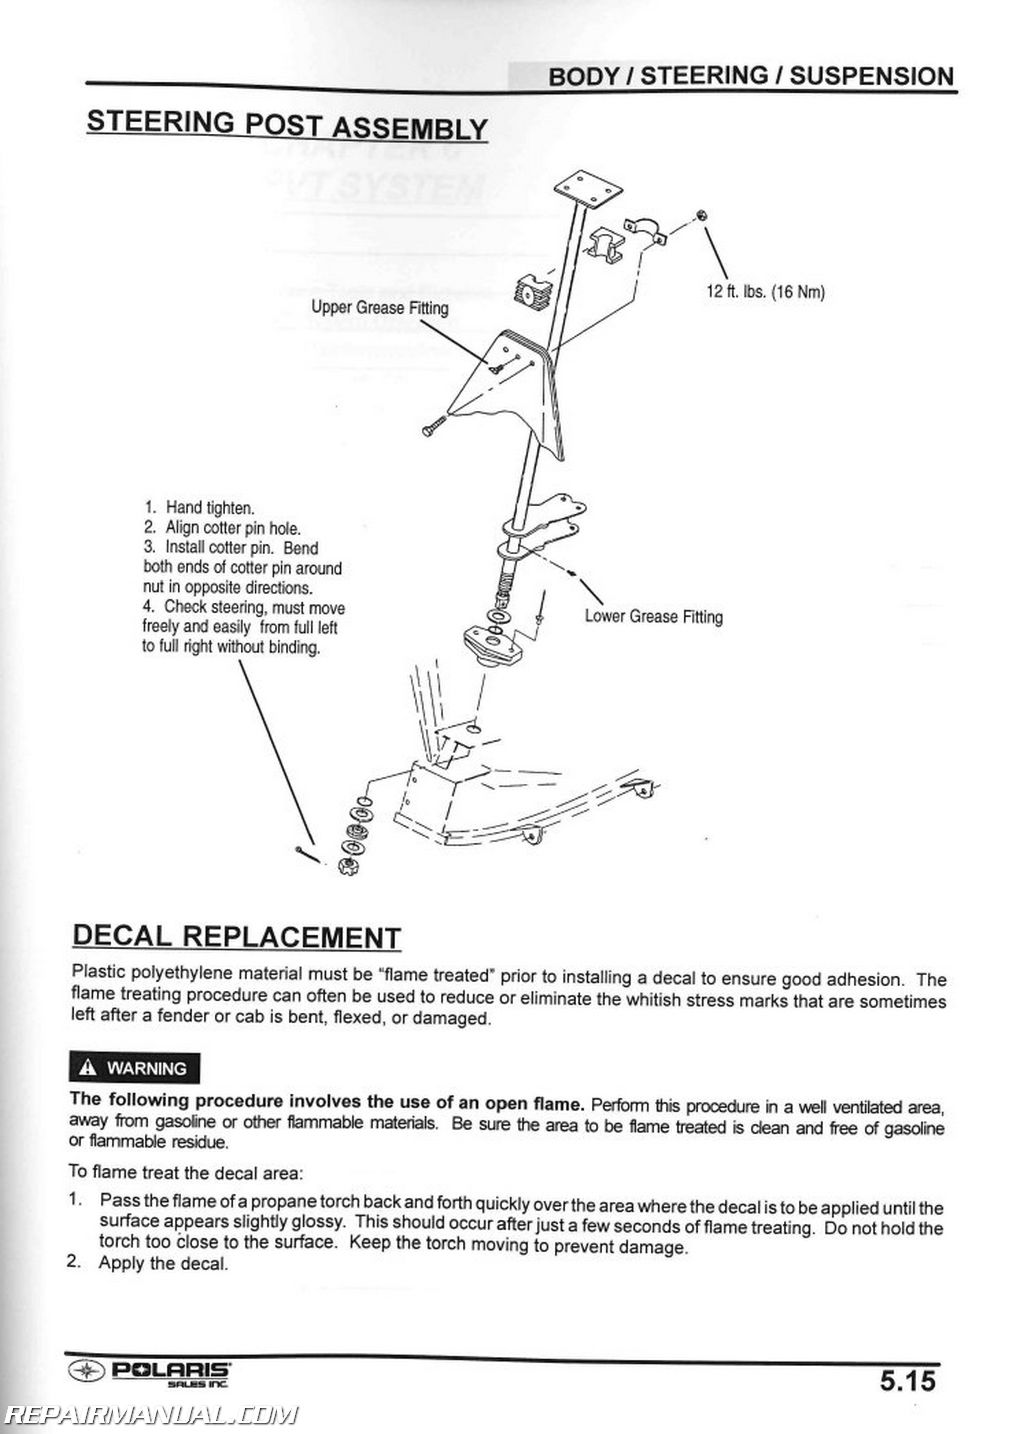 hight resolution of polaris xplorer 400 wiring diagram wiring library rh 74 pirmasens land eu 1992 polaris trail boss 250 wiring diagram polaris trailblazer 250 wiring diagram